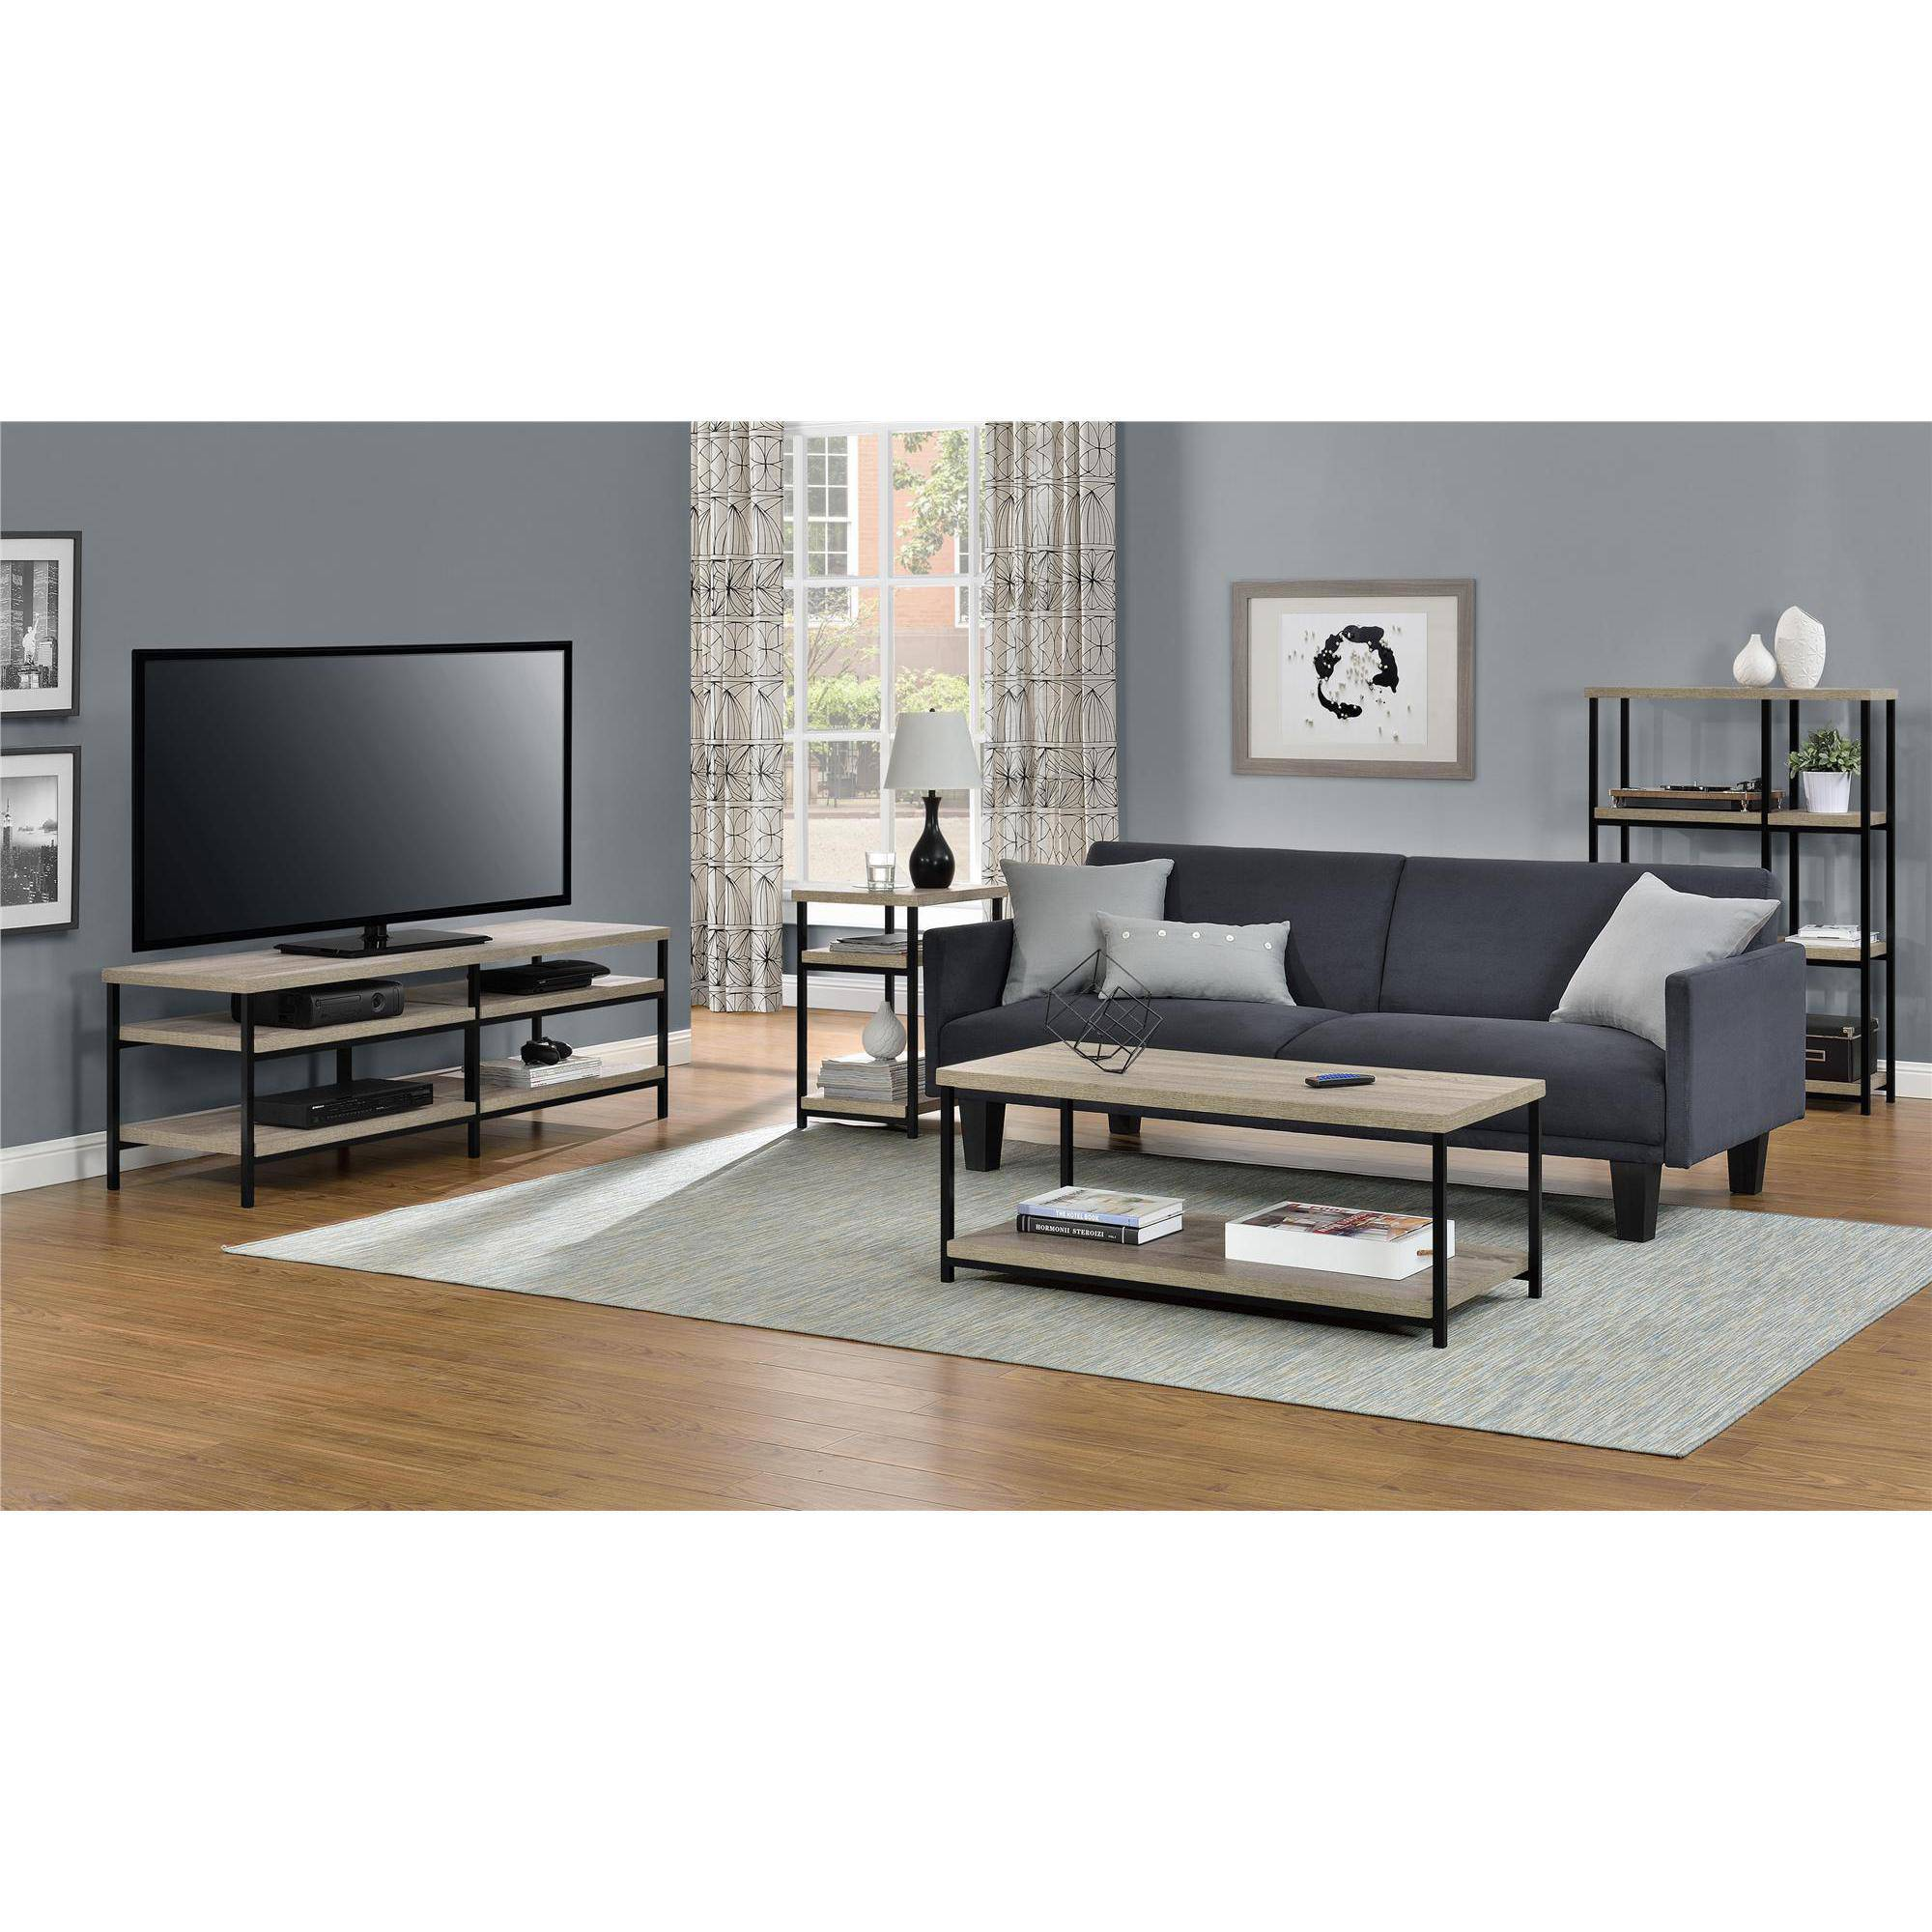 Altra Elmwood Furniture Collection